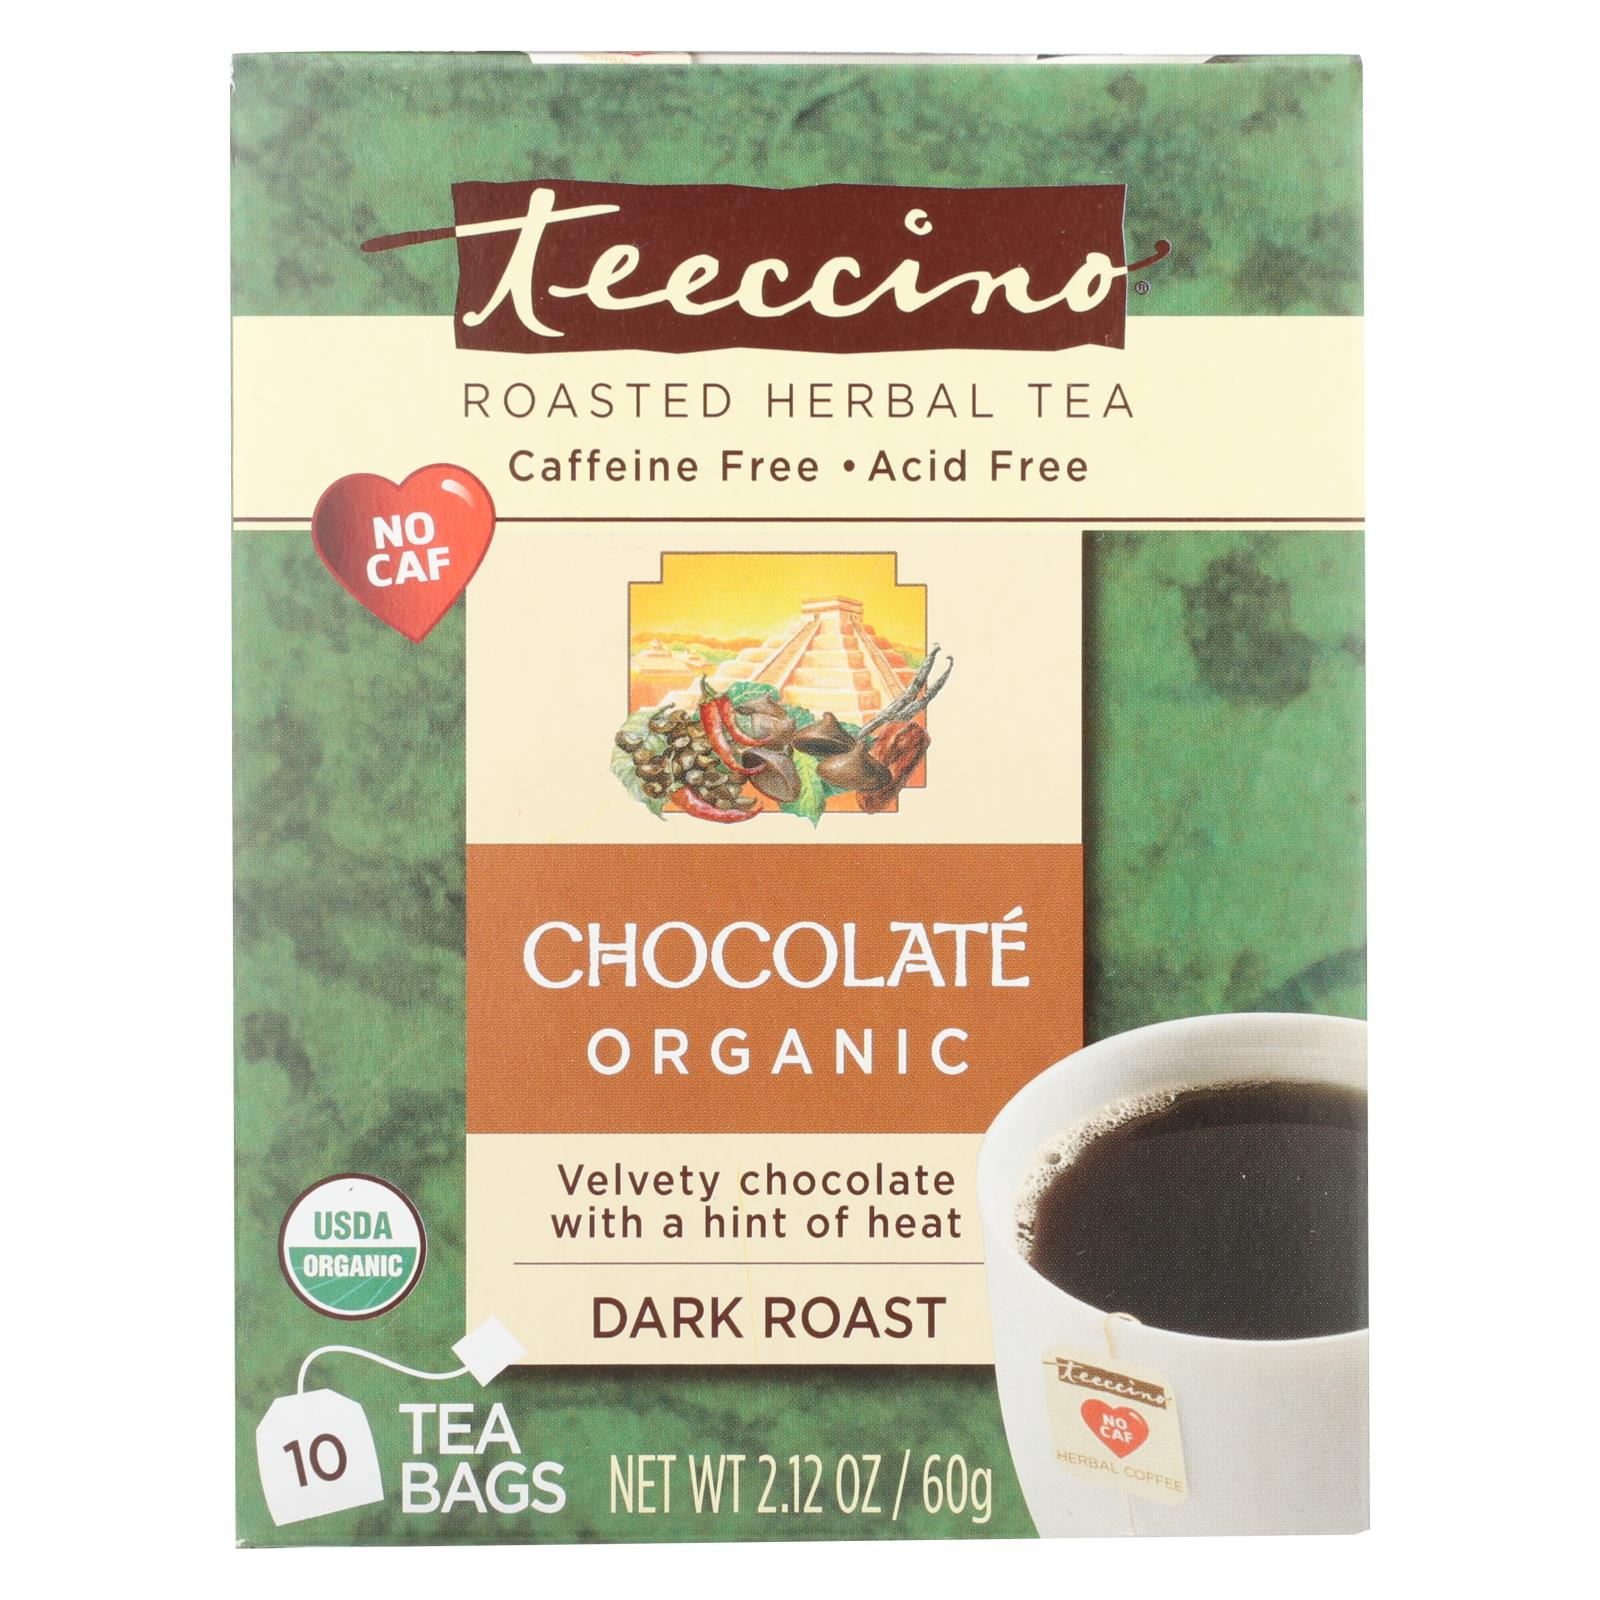 Buy Teeccino Herbal Coffee Chocolate Dark Roast - 10 Tea Bags - Case of 6 - Beverages from Veroeco.com